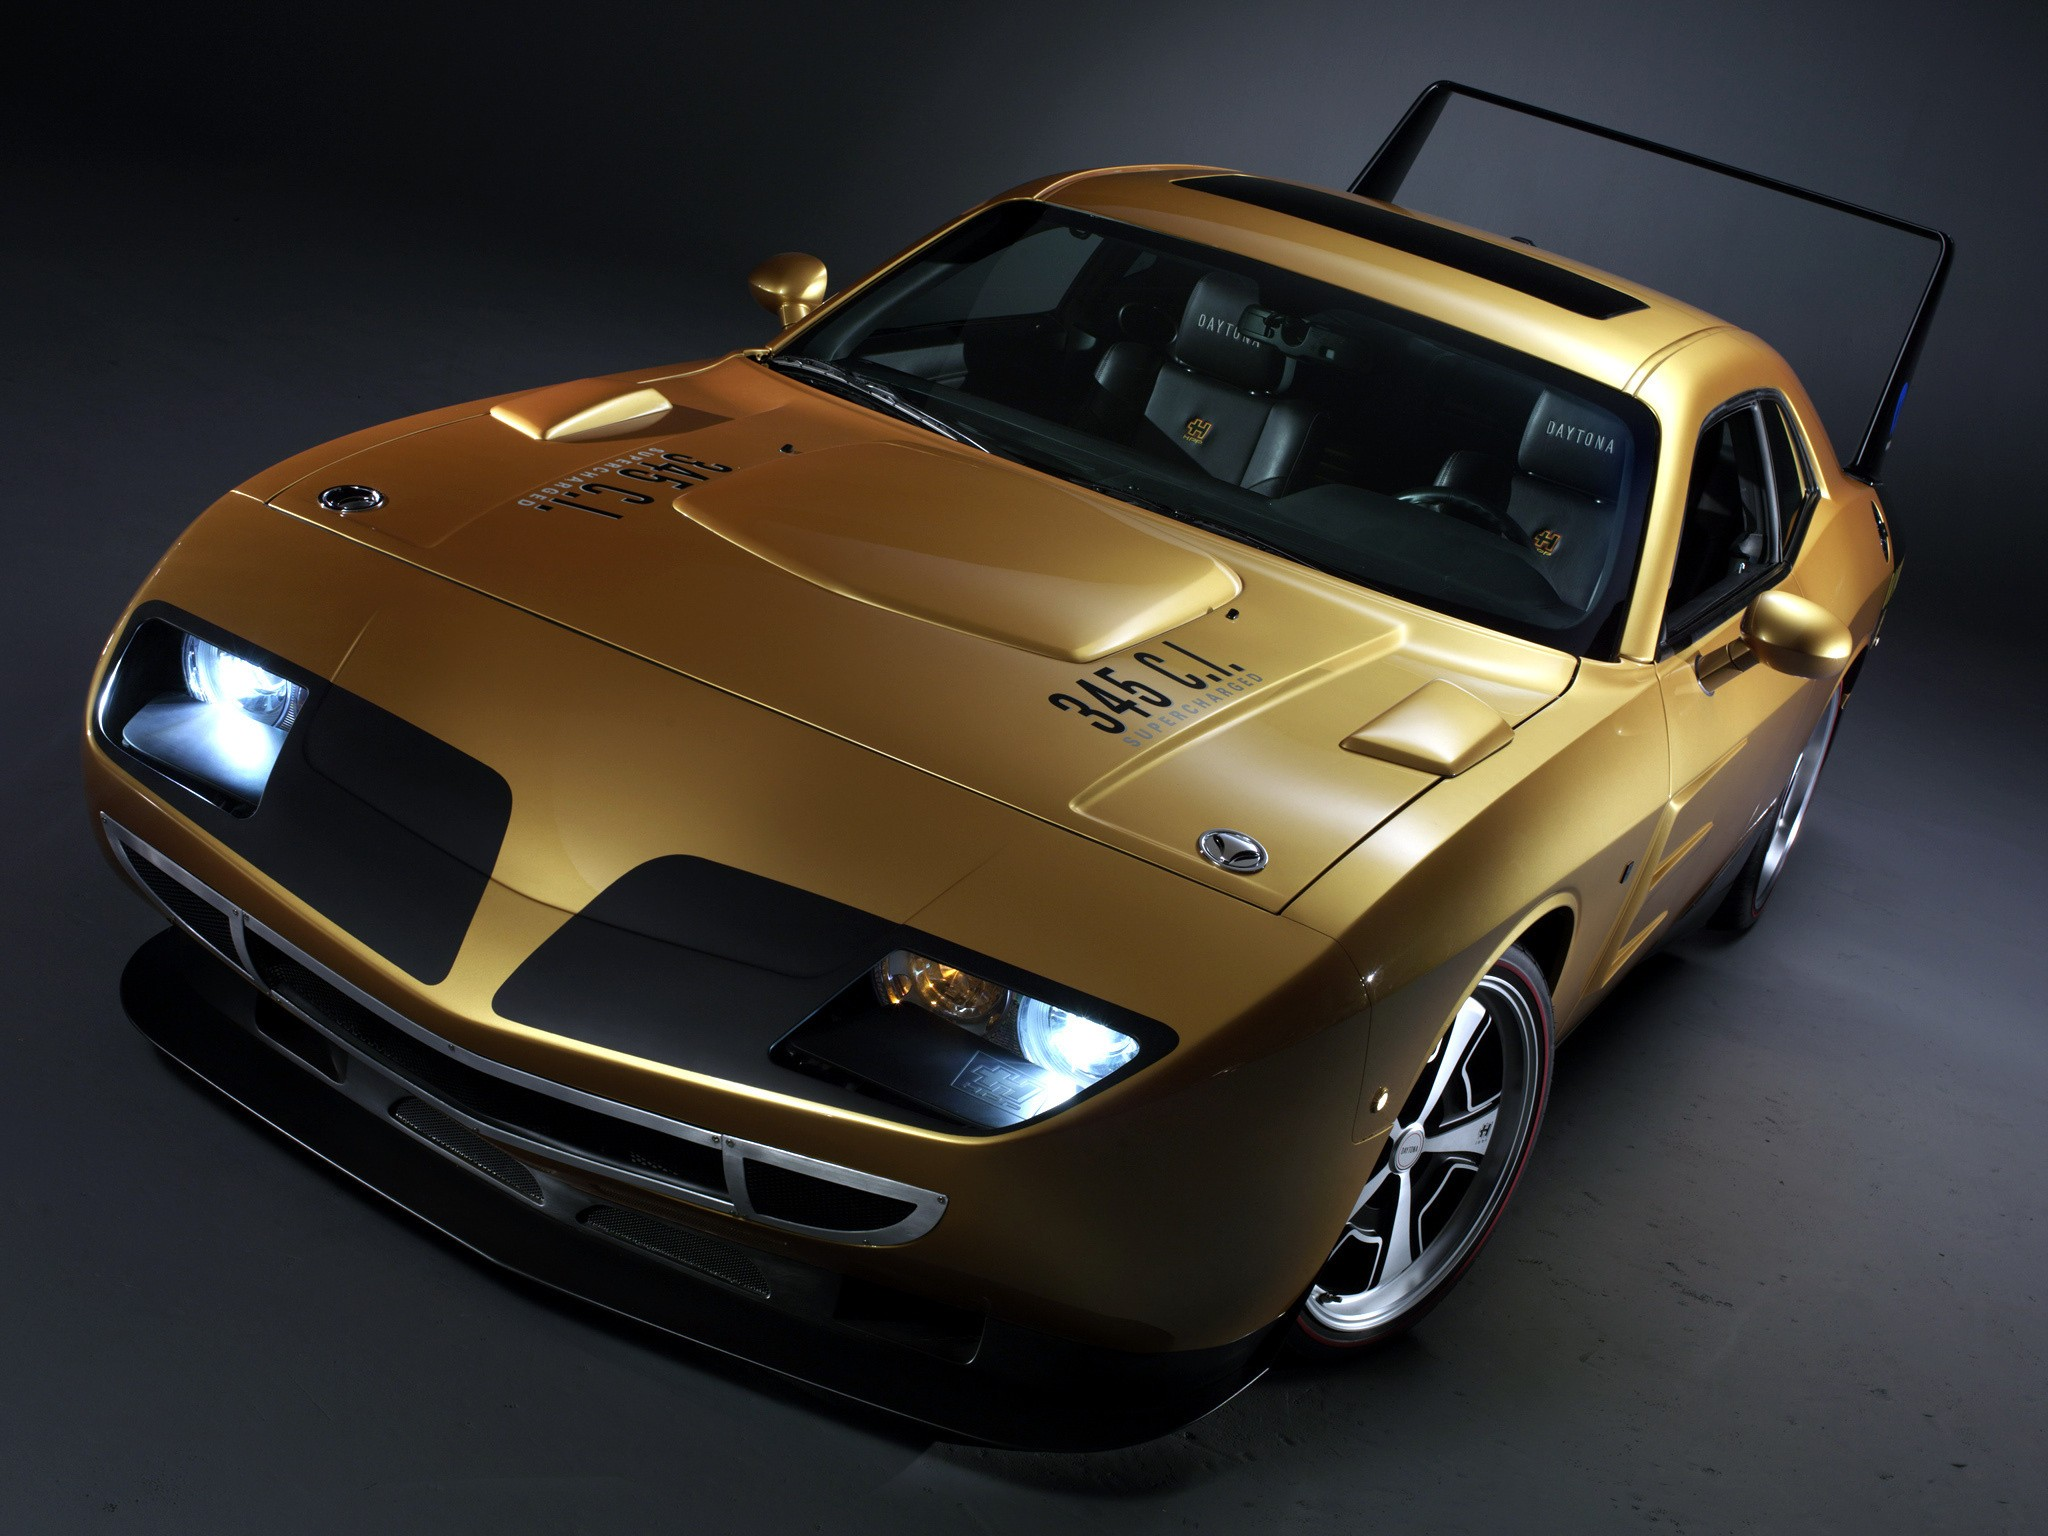 The Best Automotive Photos In Hd Pt 7 17 Pics I Like